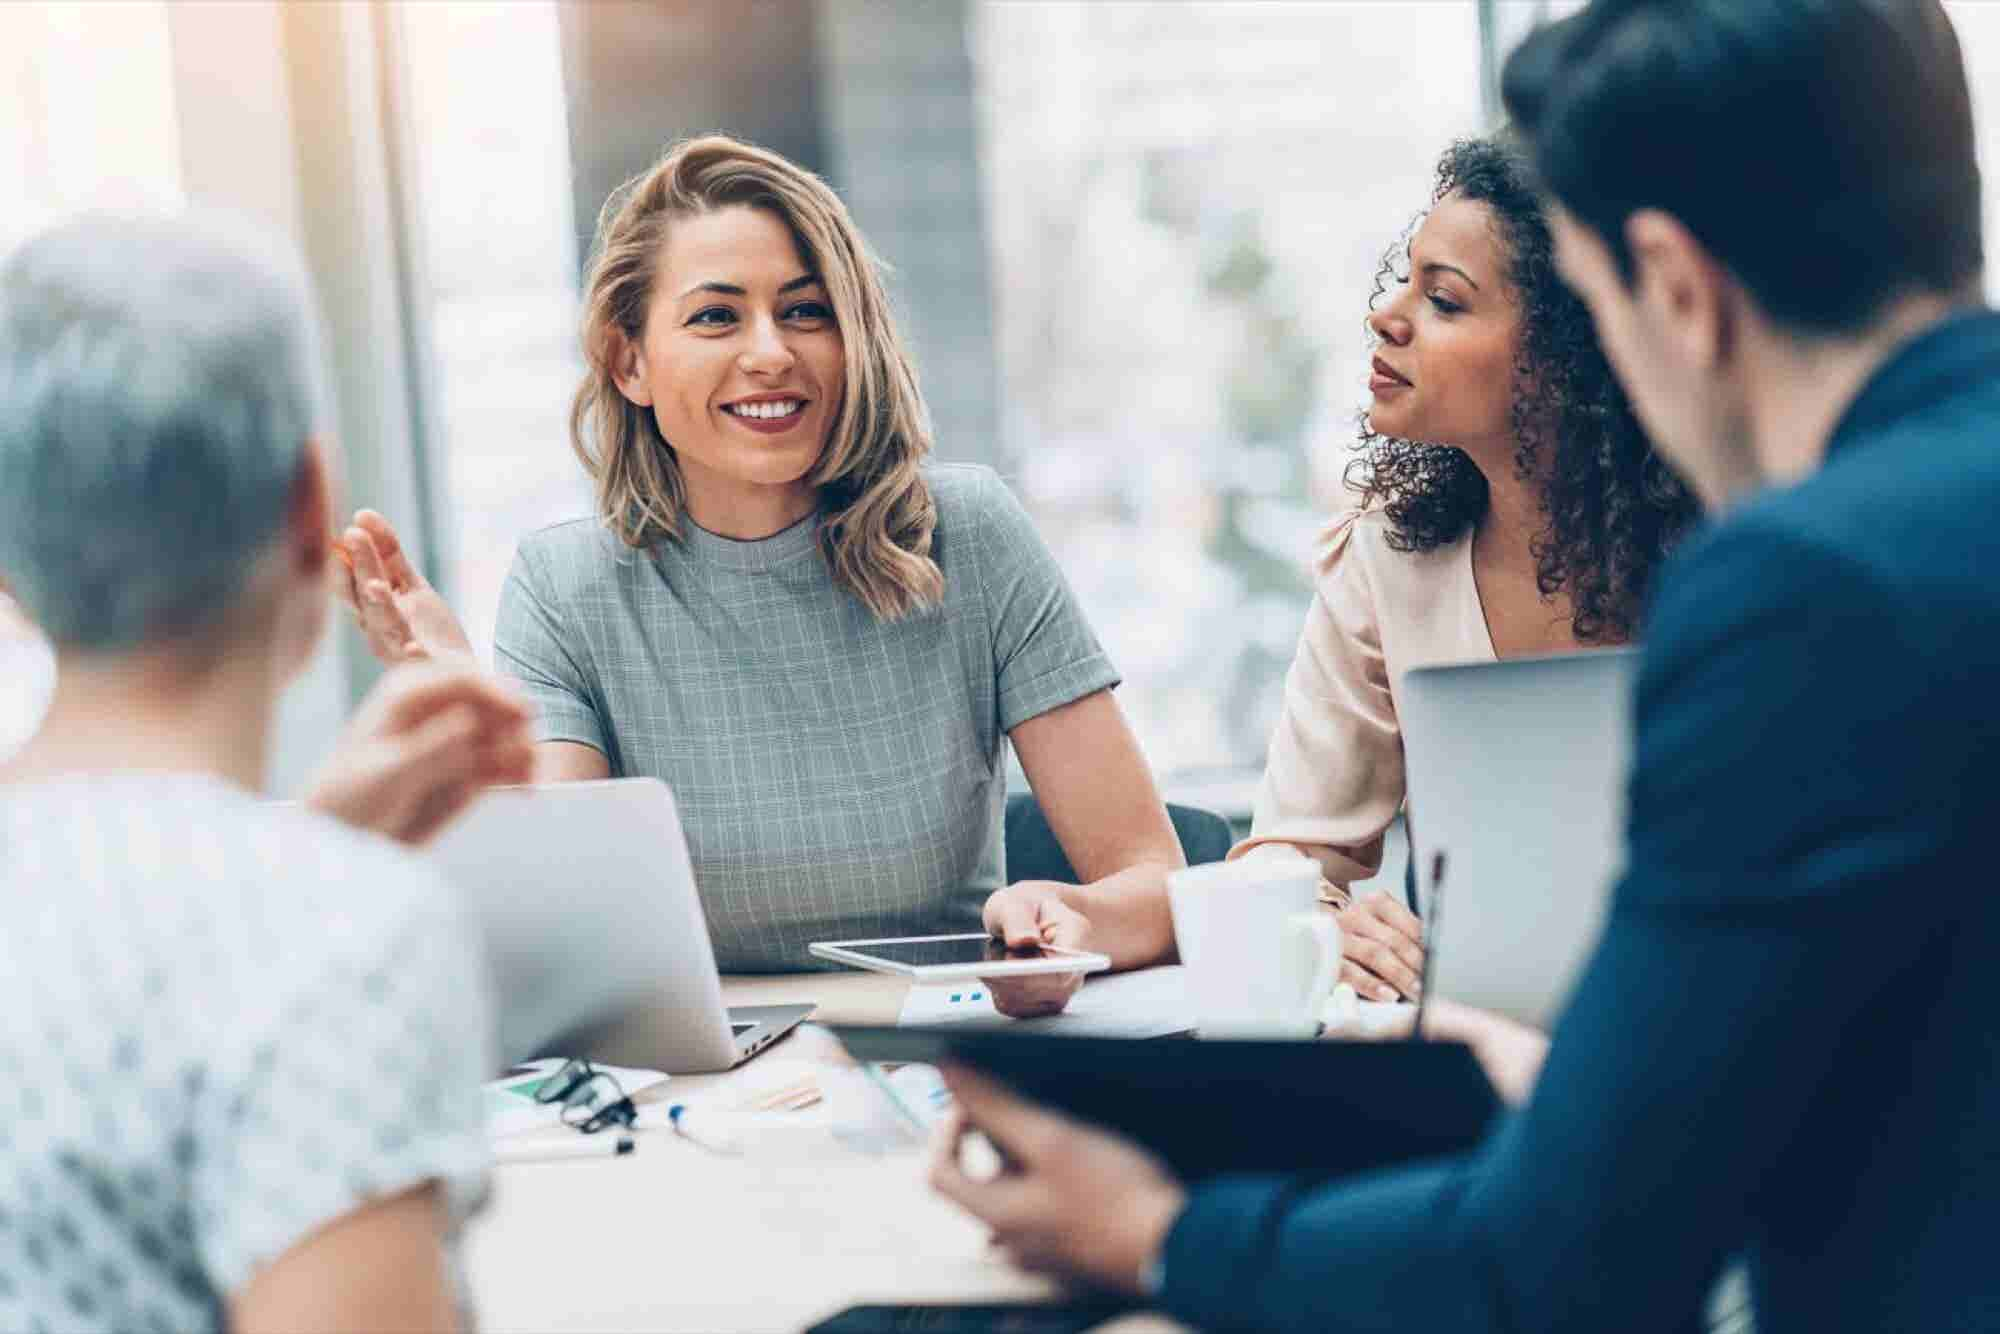 10 Steps Leaders Can Take to Create a Culture of Candor